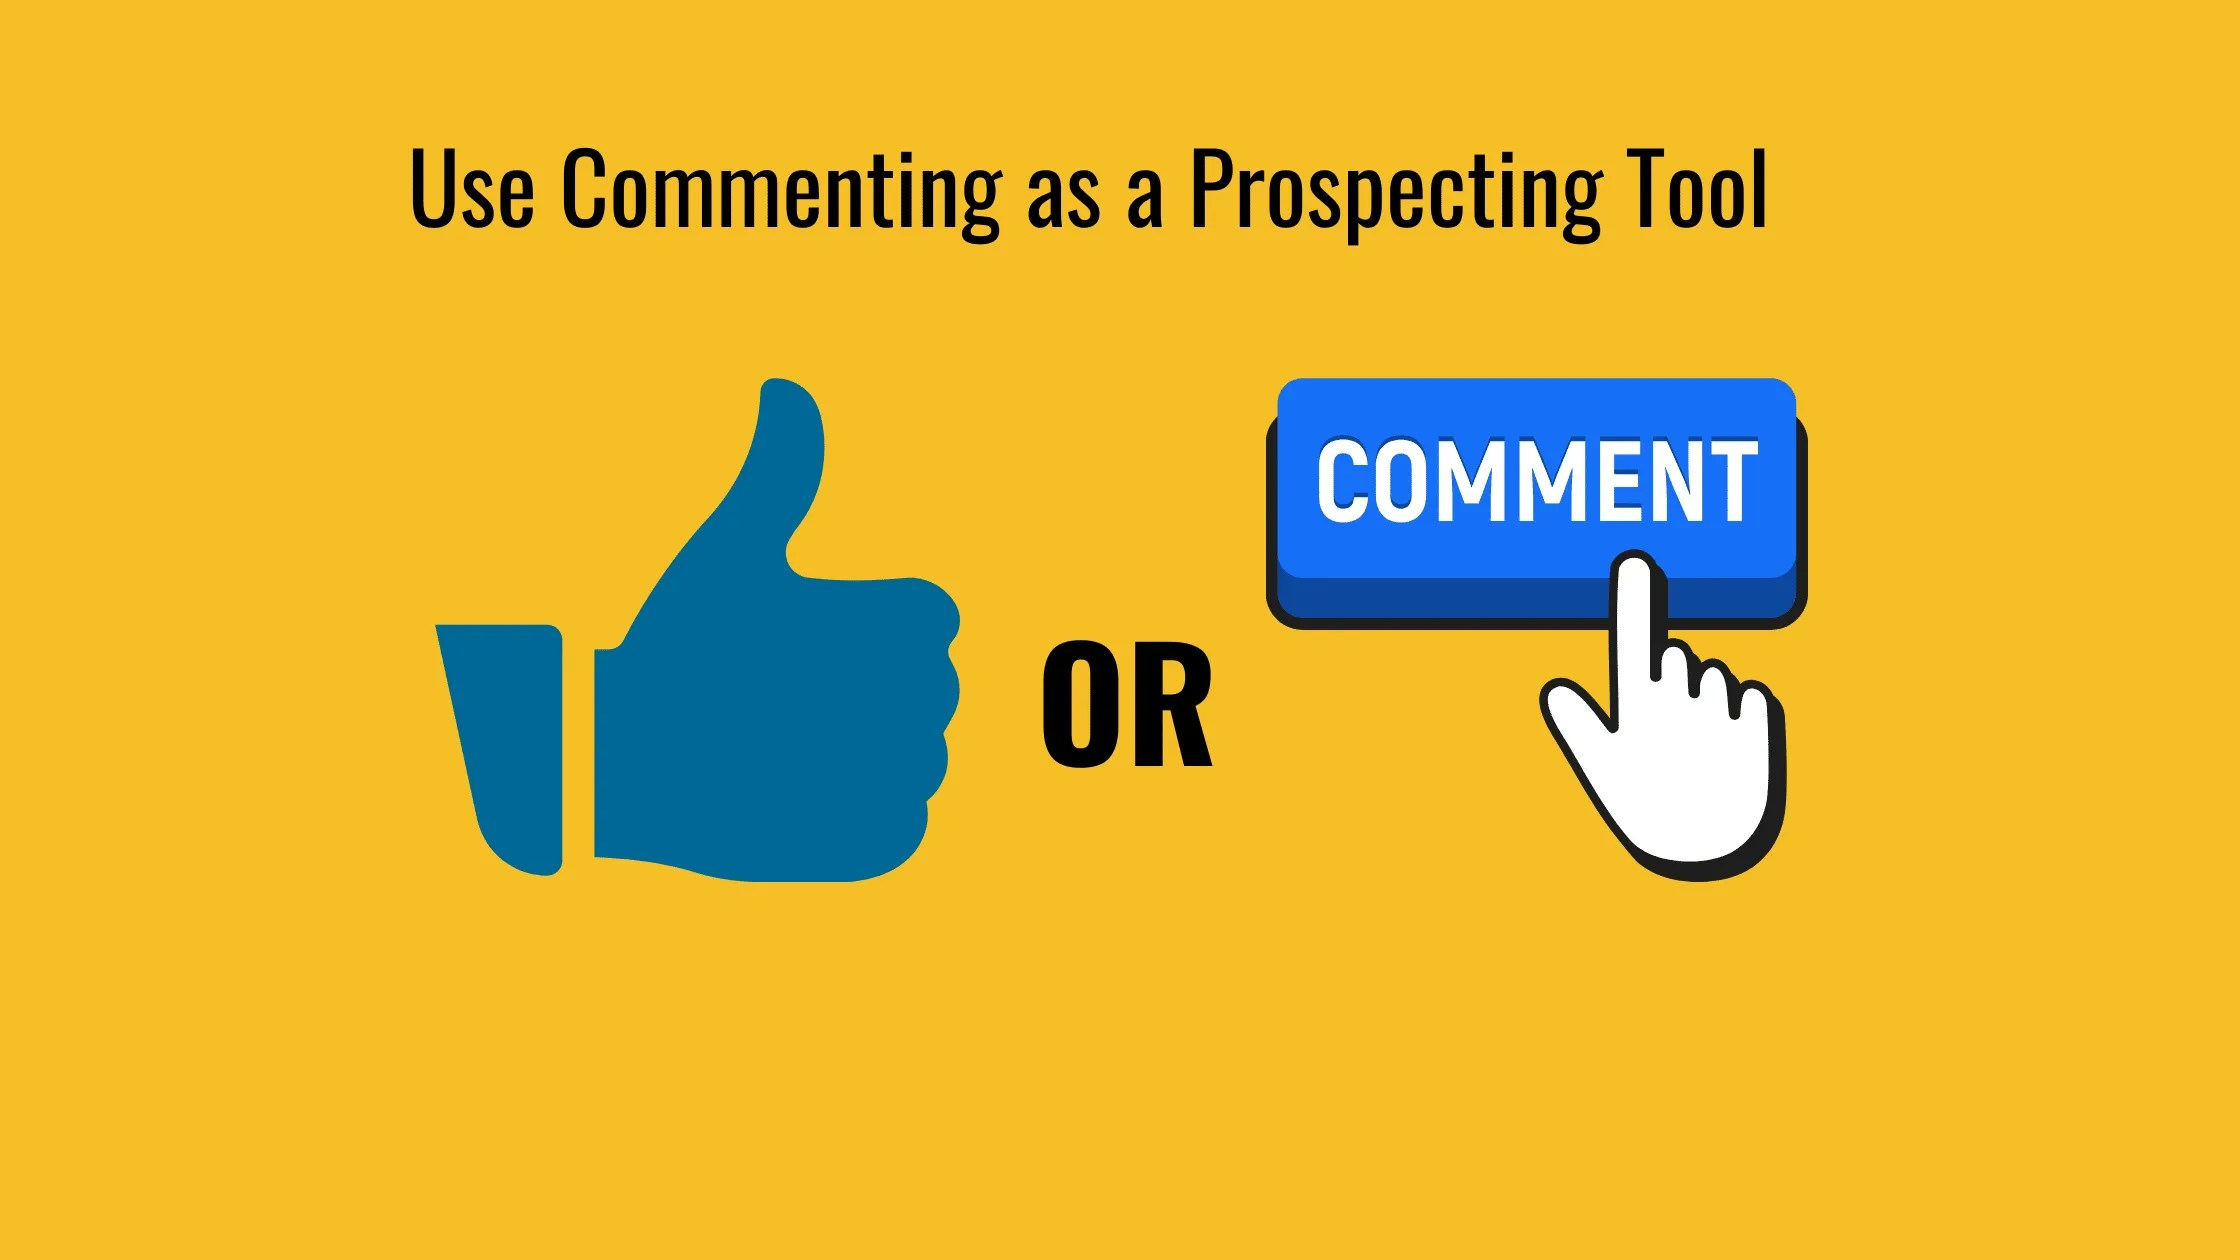 How to use commenting as a prospecting tool